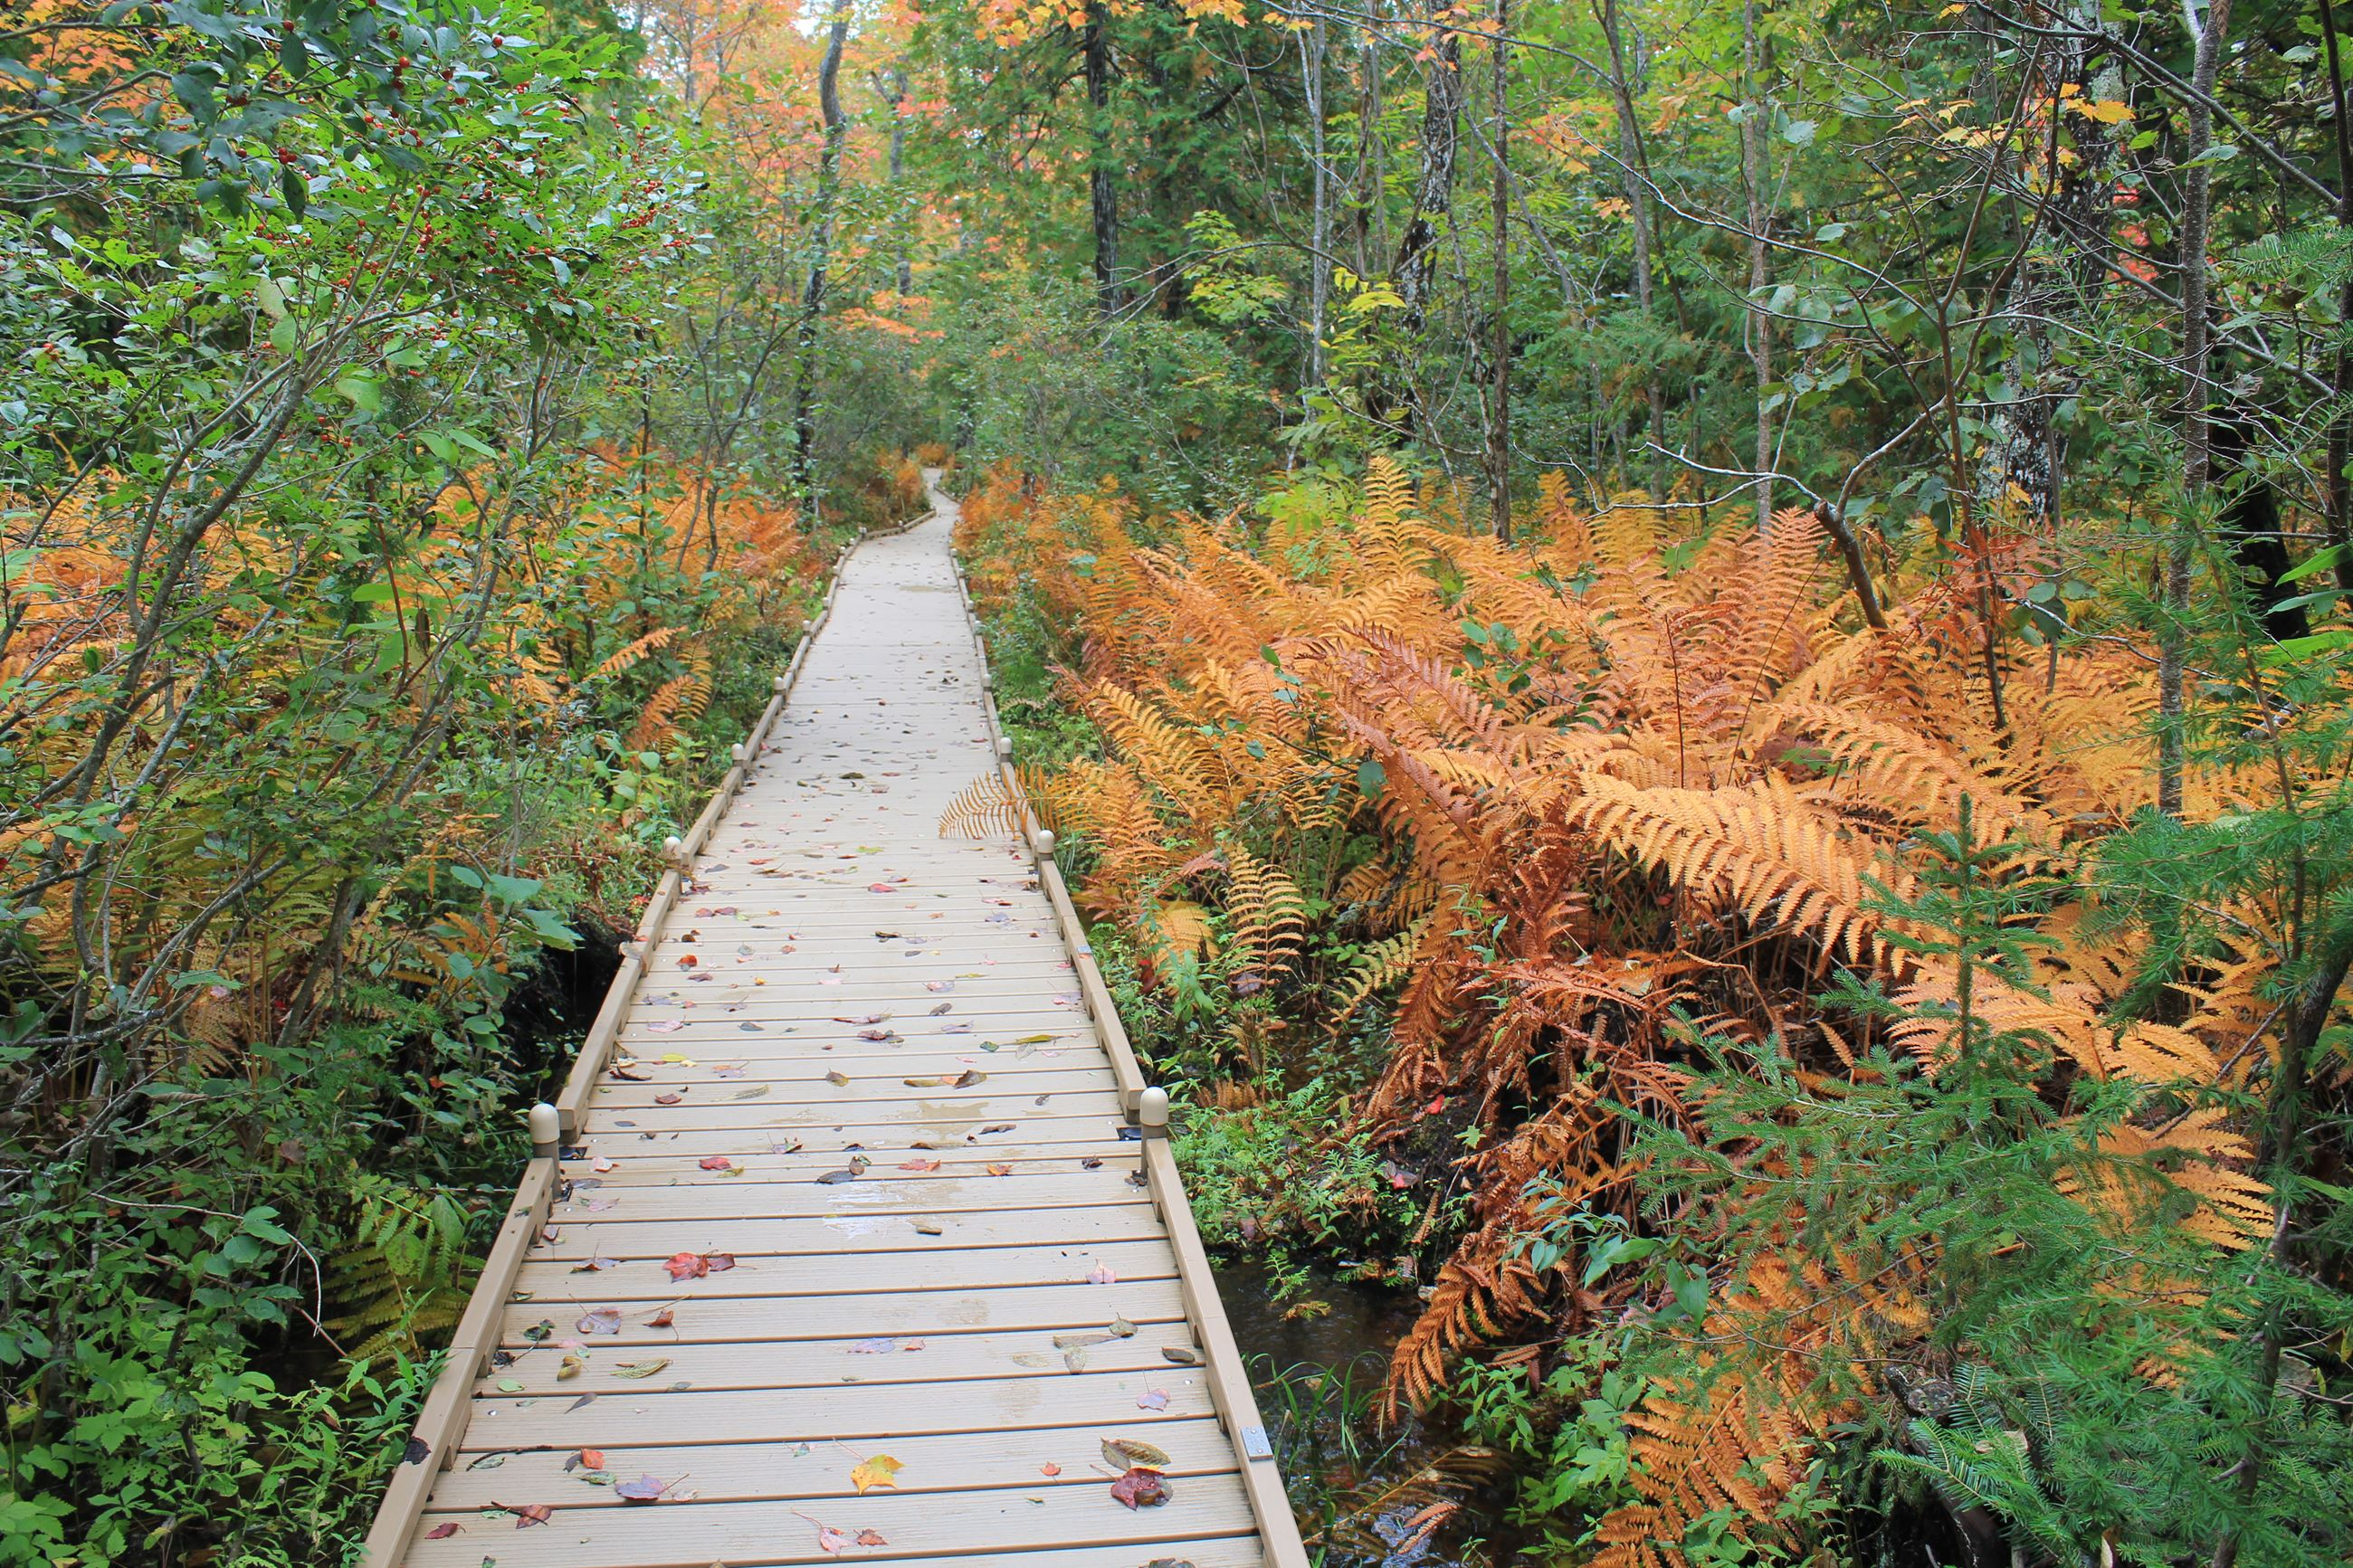 IMG_6853.JPG, boardwalk, ferns orange